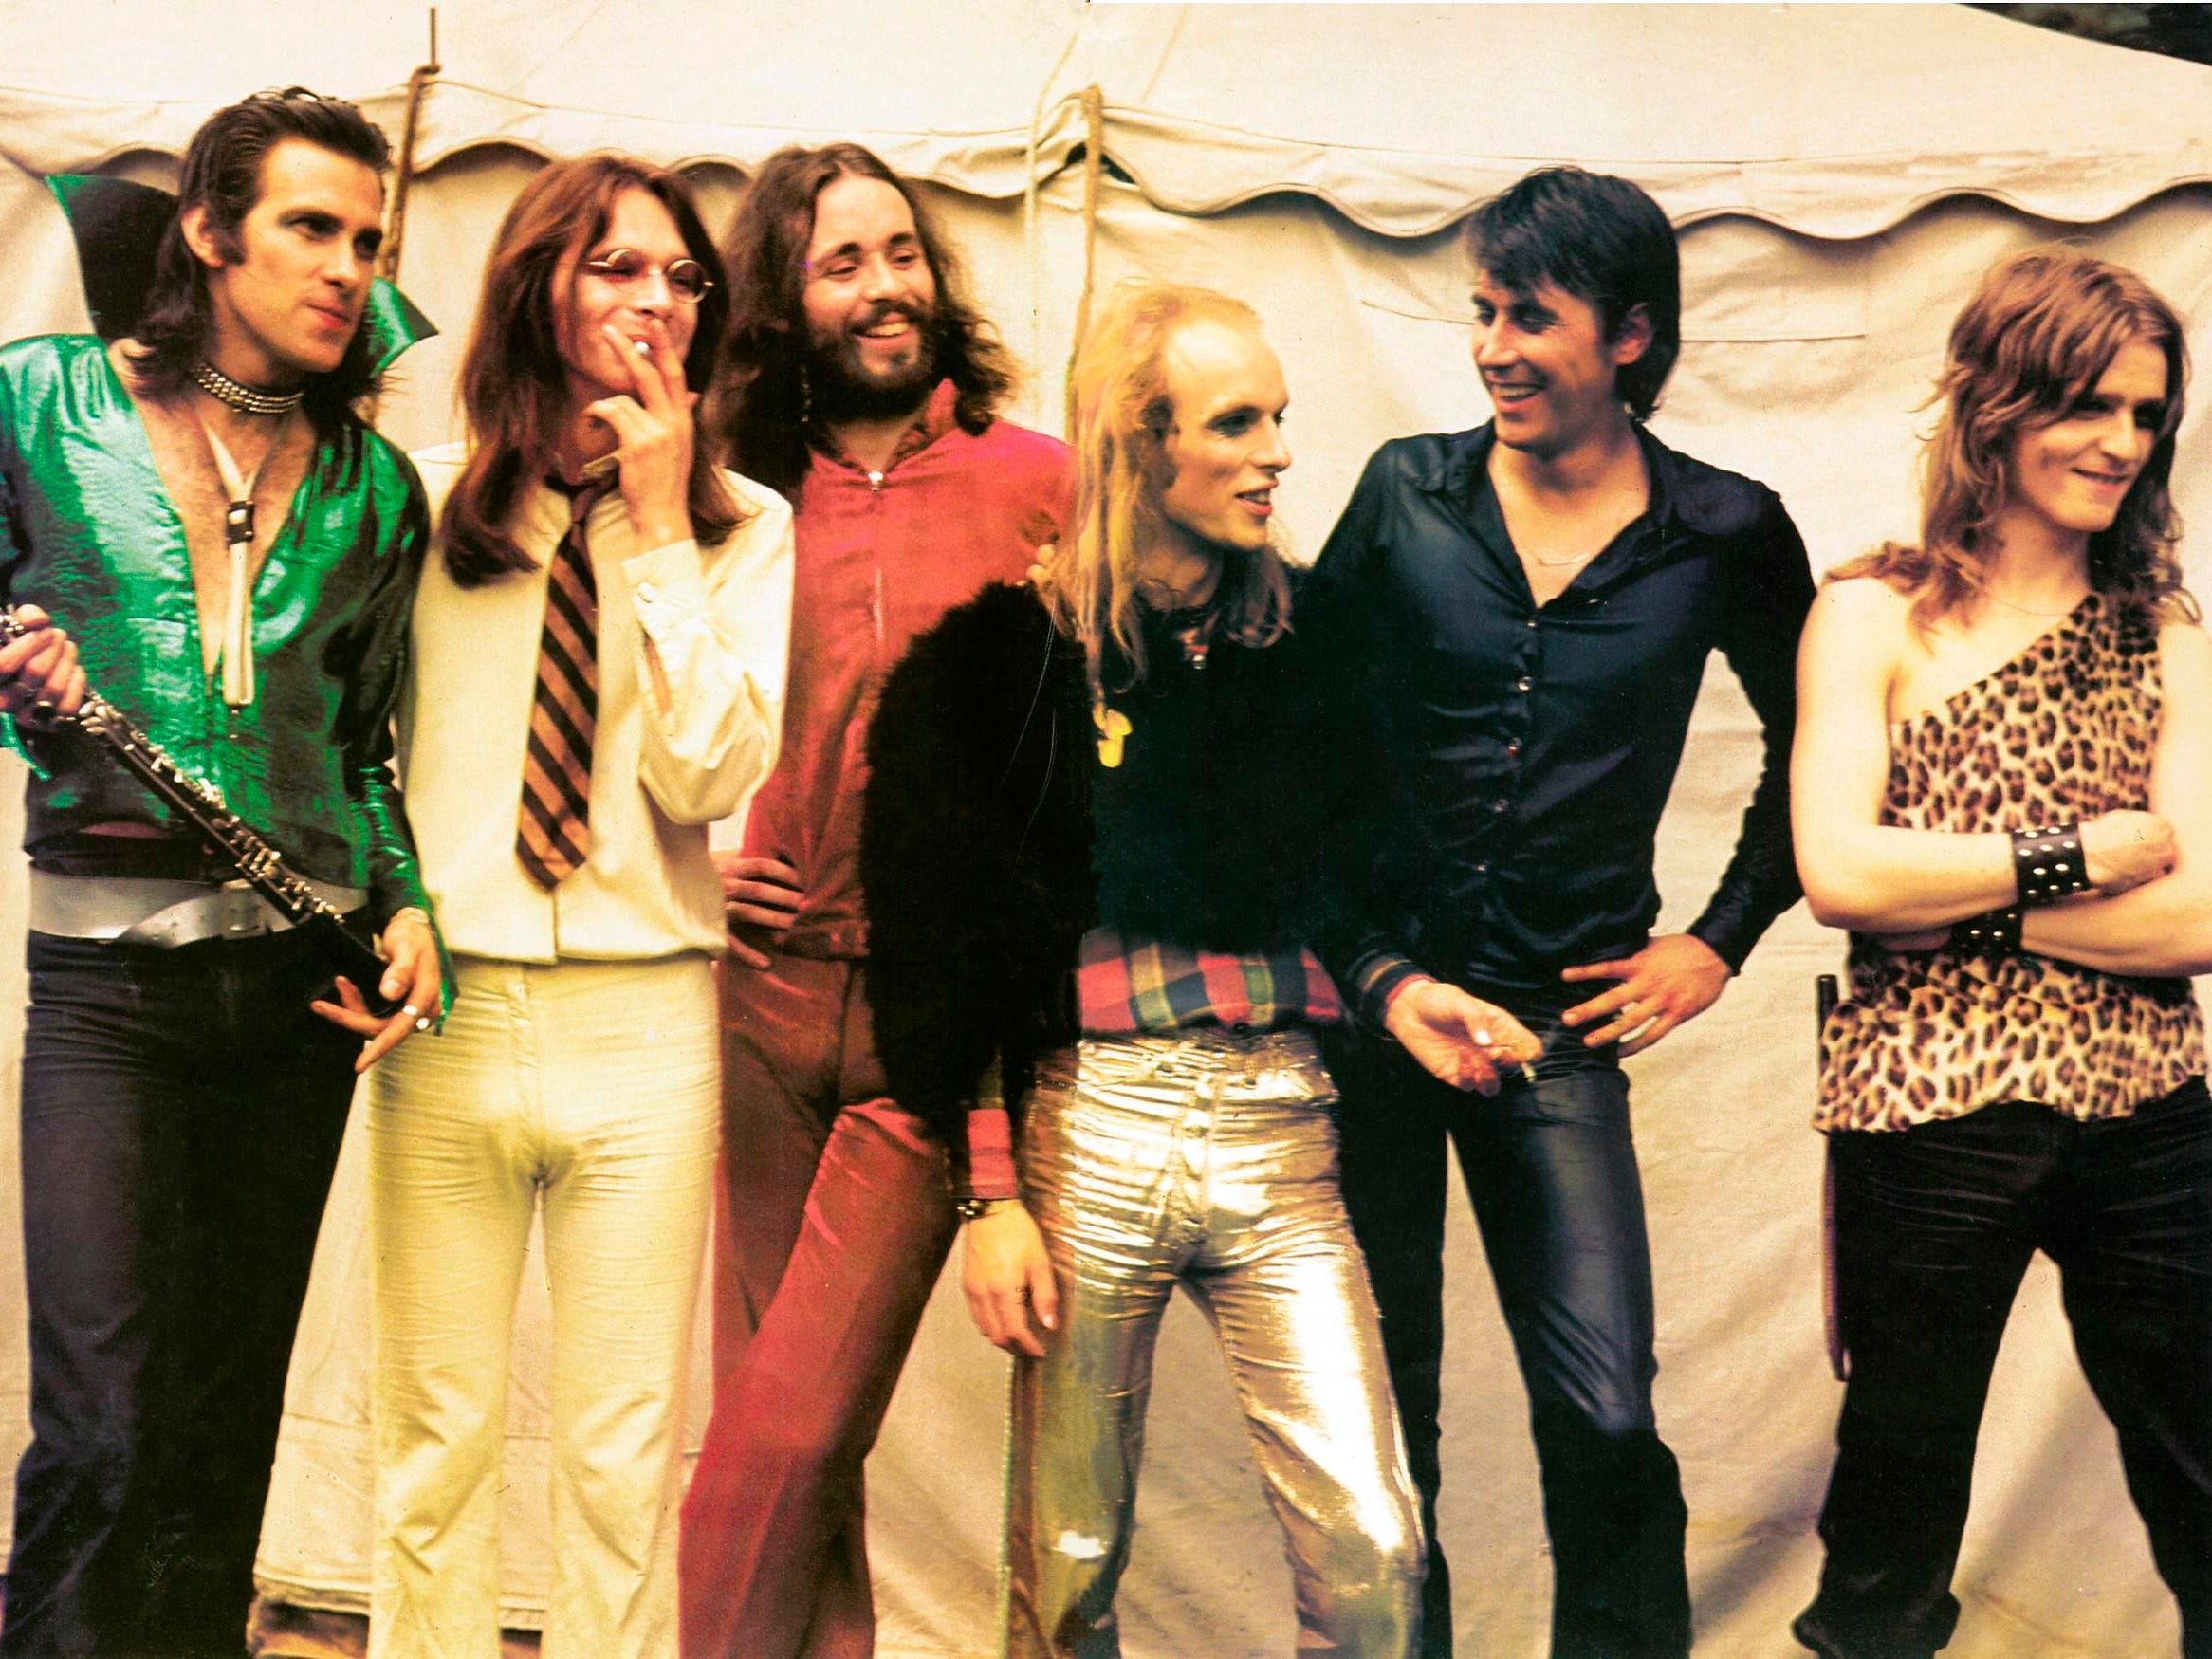 Roxy Music. Members of the musical group shown here are Andrew Mackay, Graham Simpson, Phil Manzanera, Eno, Bryan Ferry and Paul Thompson.